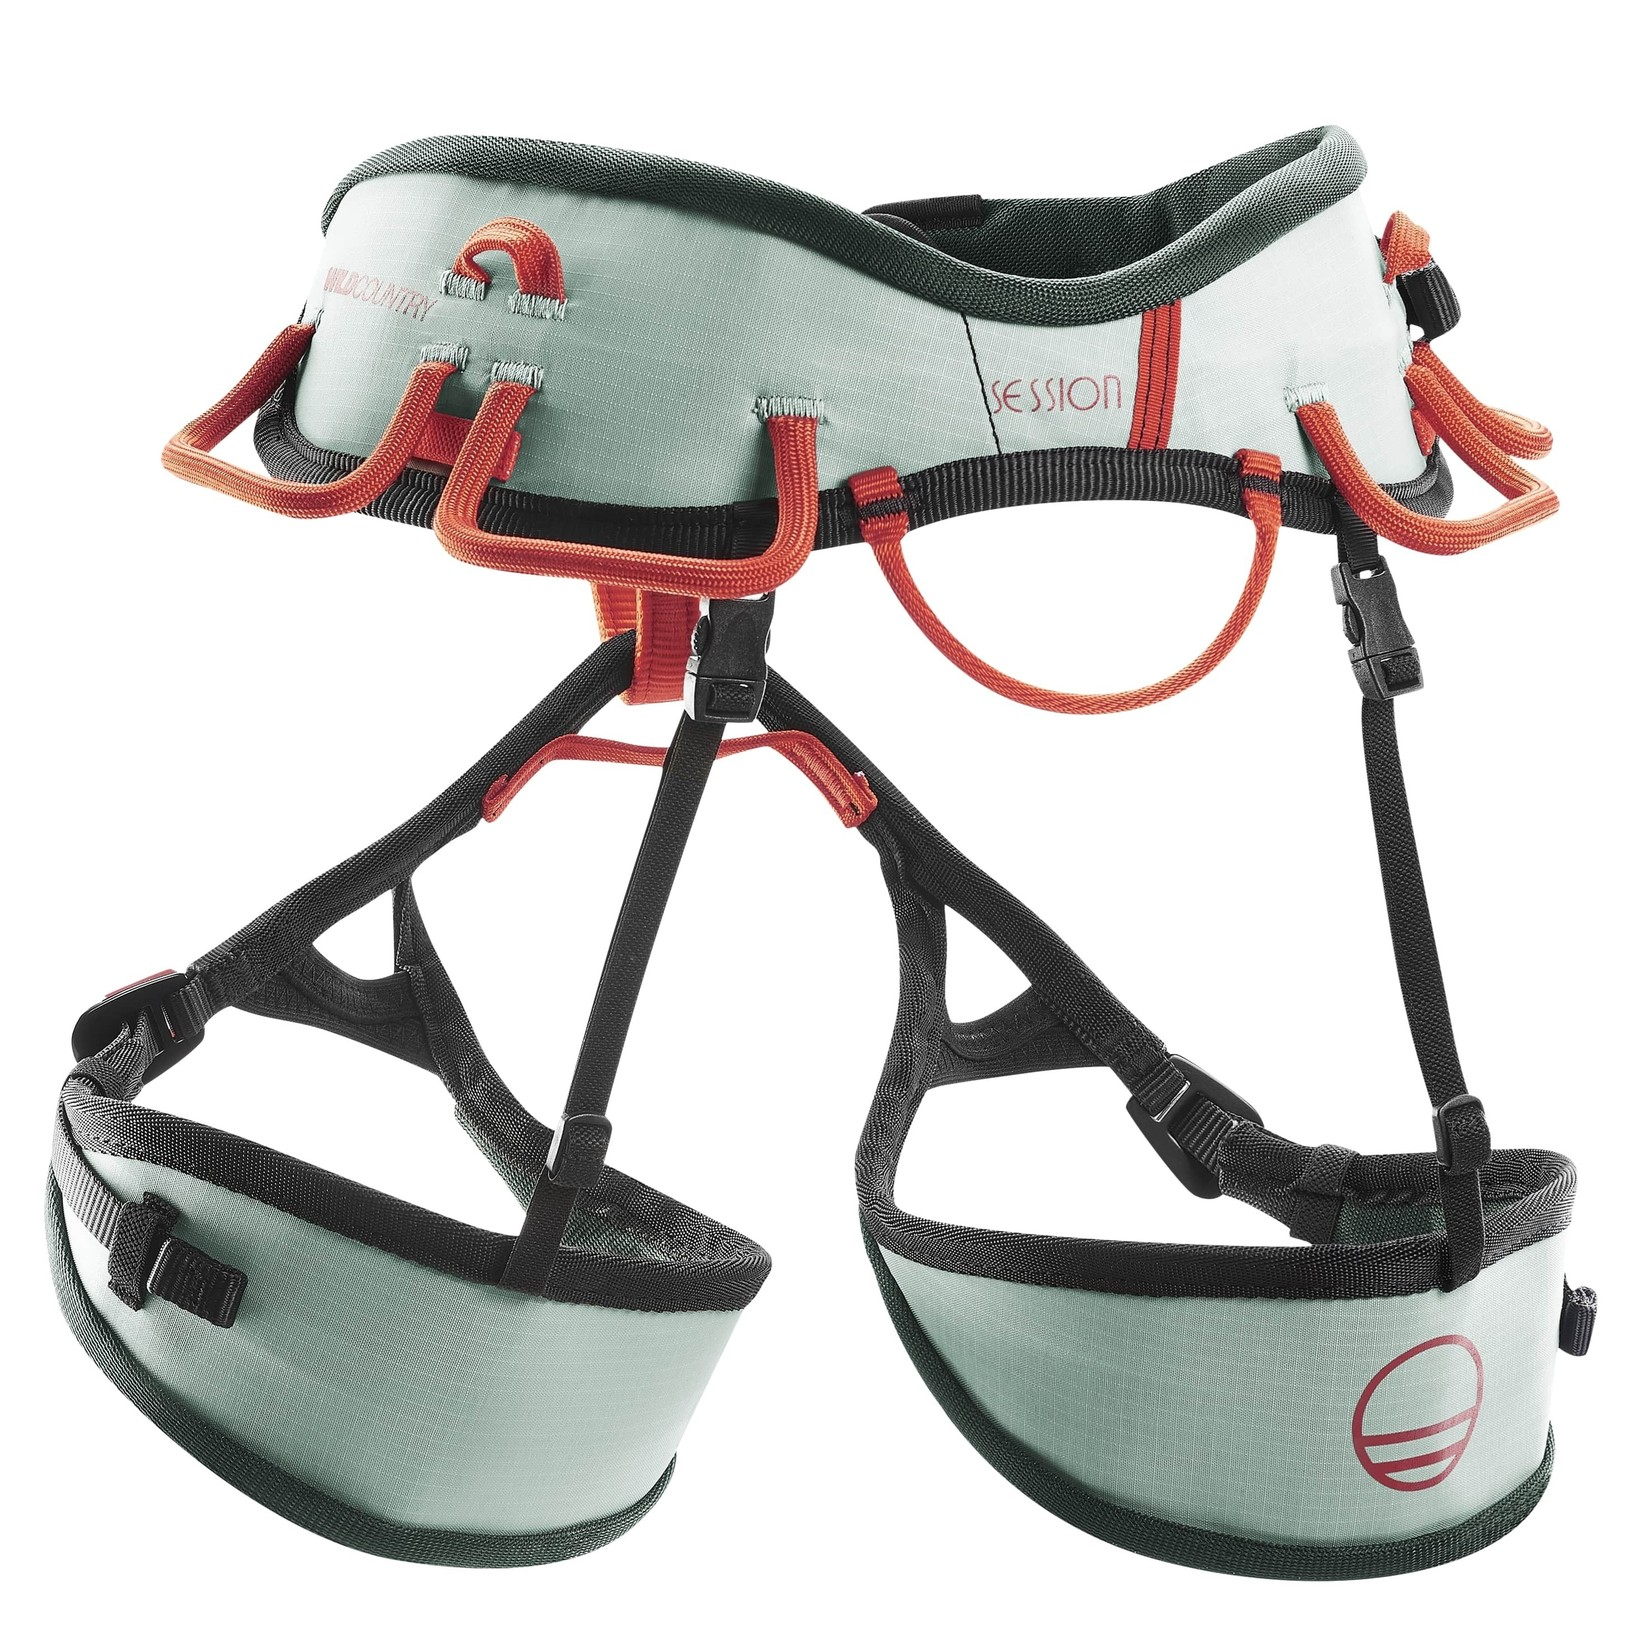 Wild Country Session Harness Women's